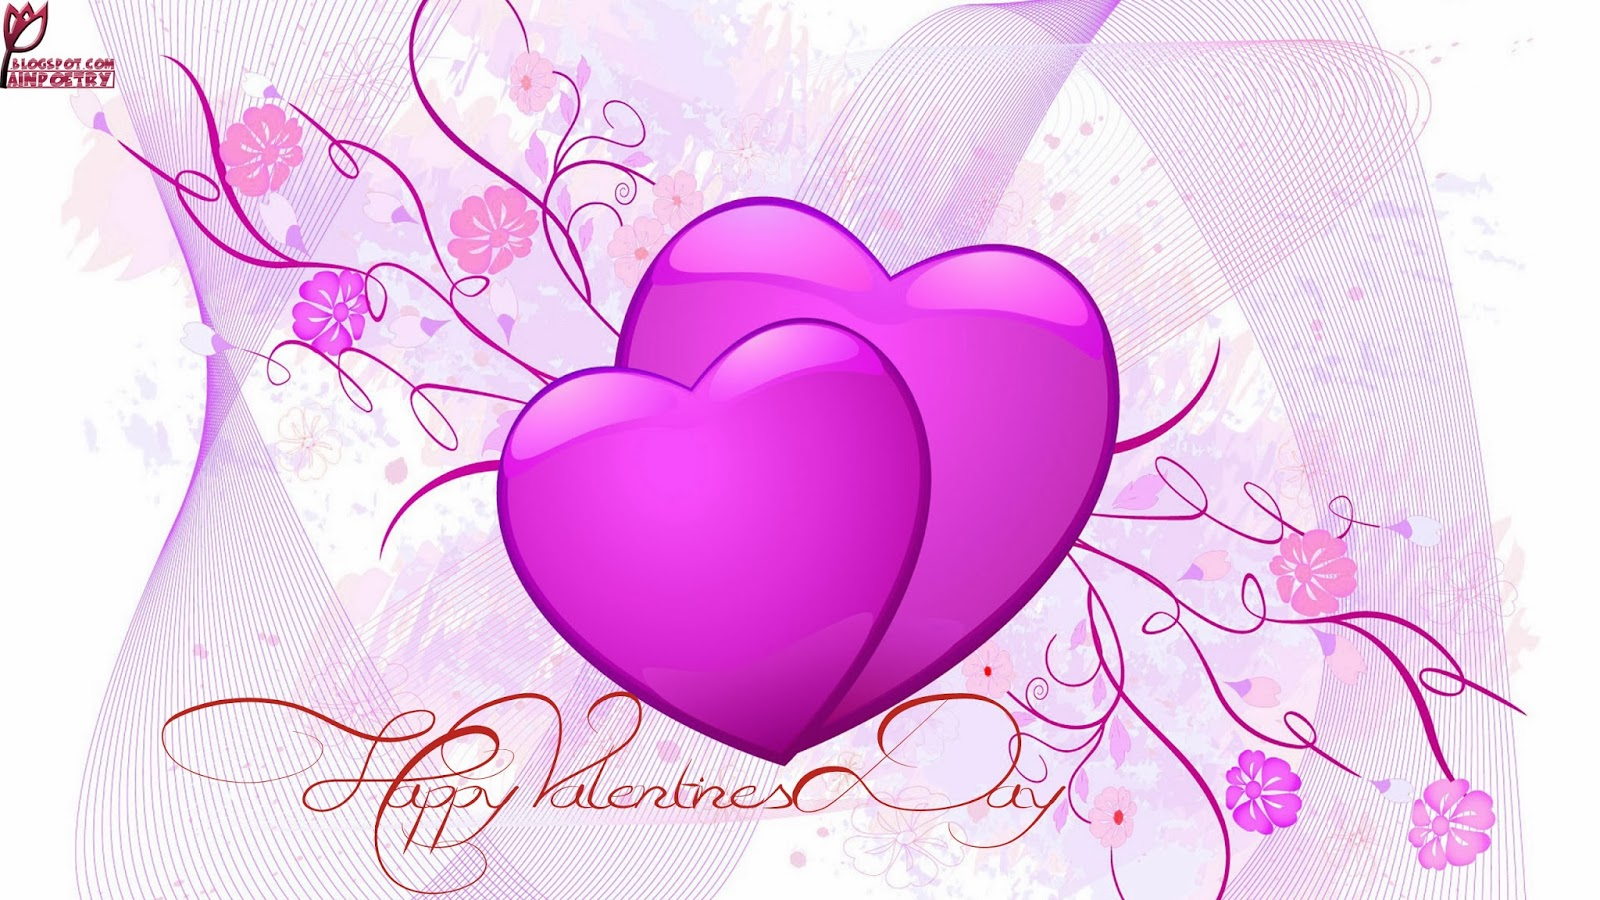 Happy Valentines Day Wishes With Heart Wallpaper Image Photo HD